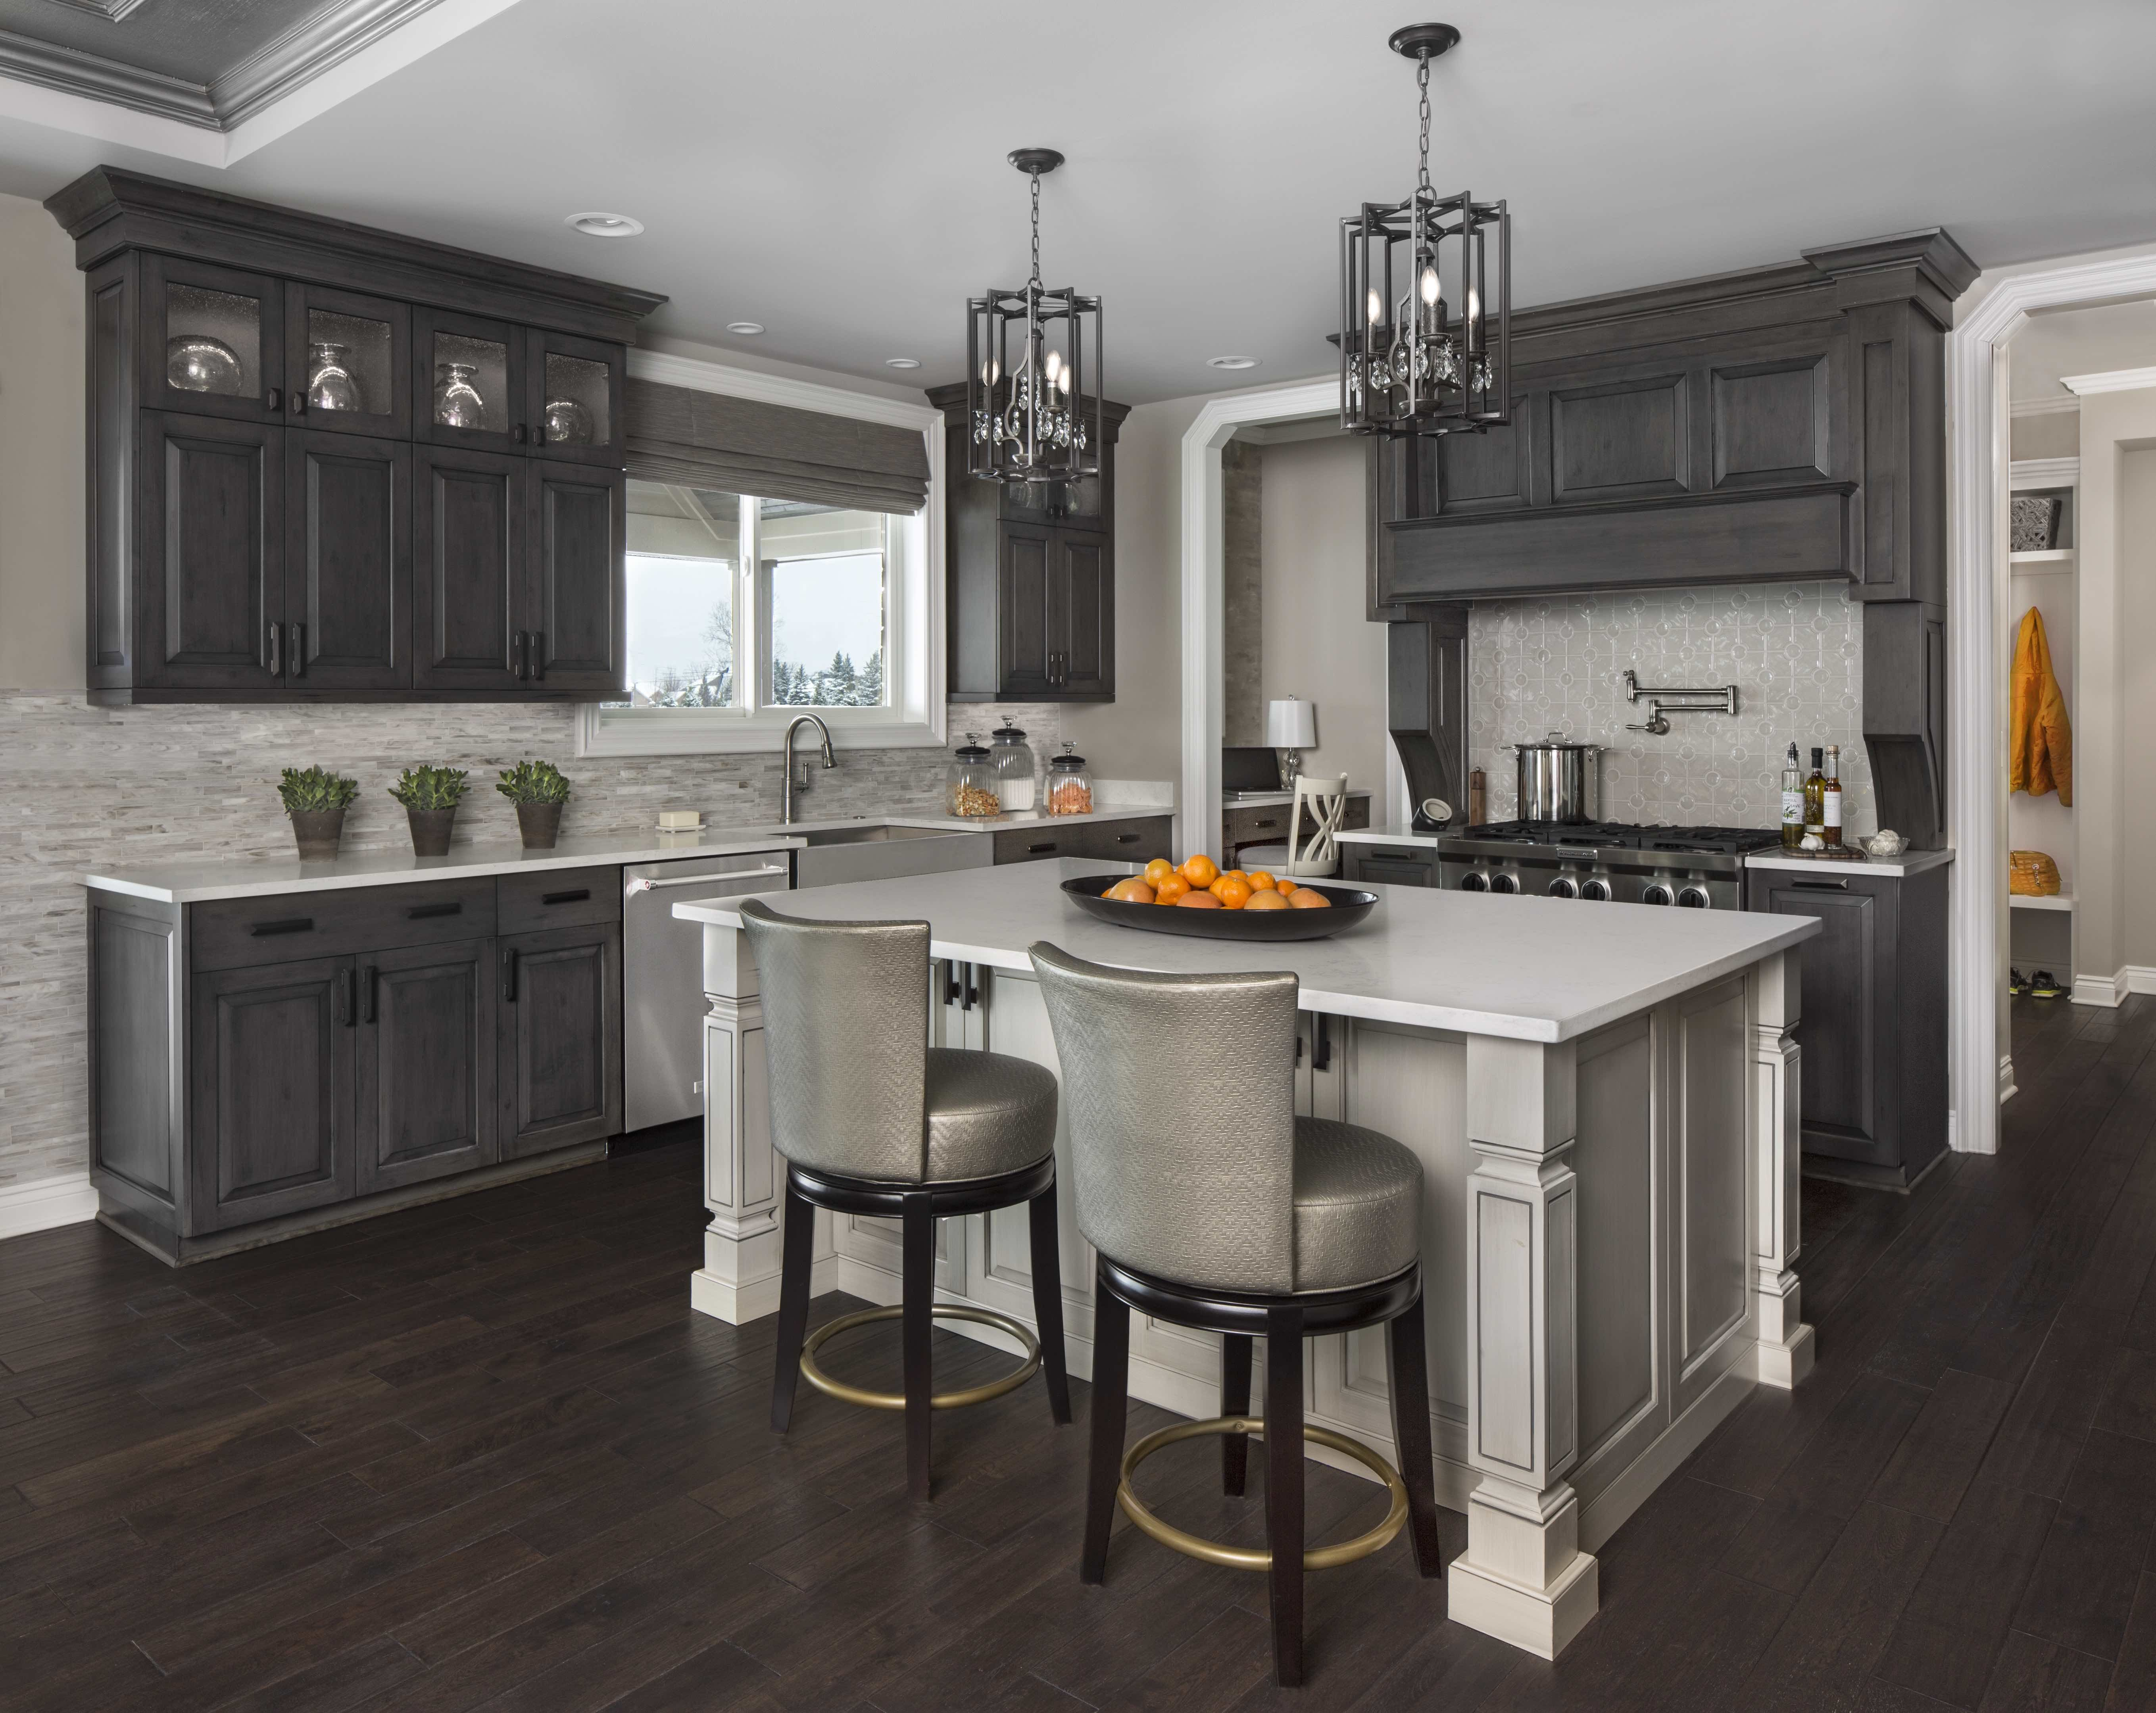 Contemporary Kitchen Renovated With Lafata Cabinets Custom Kitchen Cabinets Kitchen Remodel Kitchen Cabinets